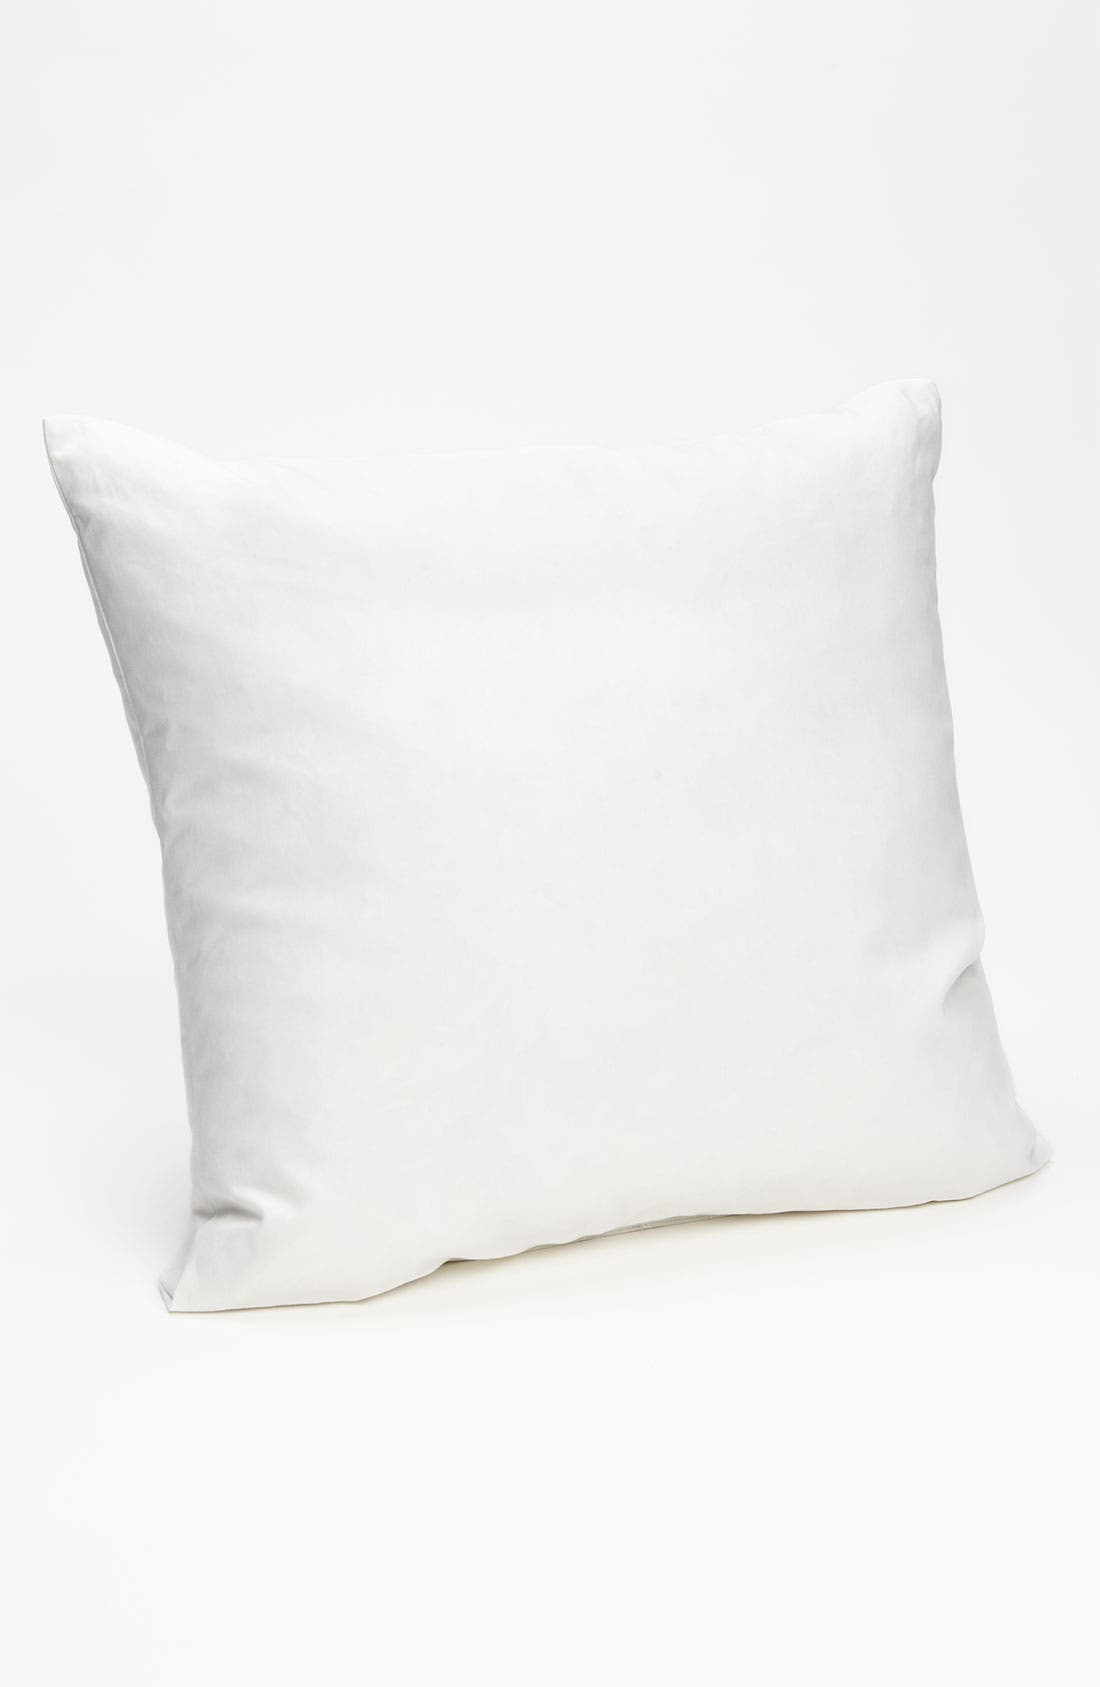 main image nordstrom at home 18x18 feather u0026 down pillow insert 2 for 24 - Down Pillow Inserts